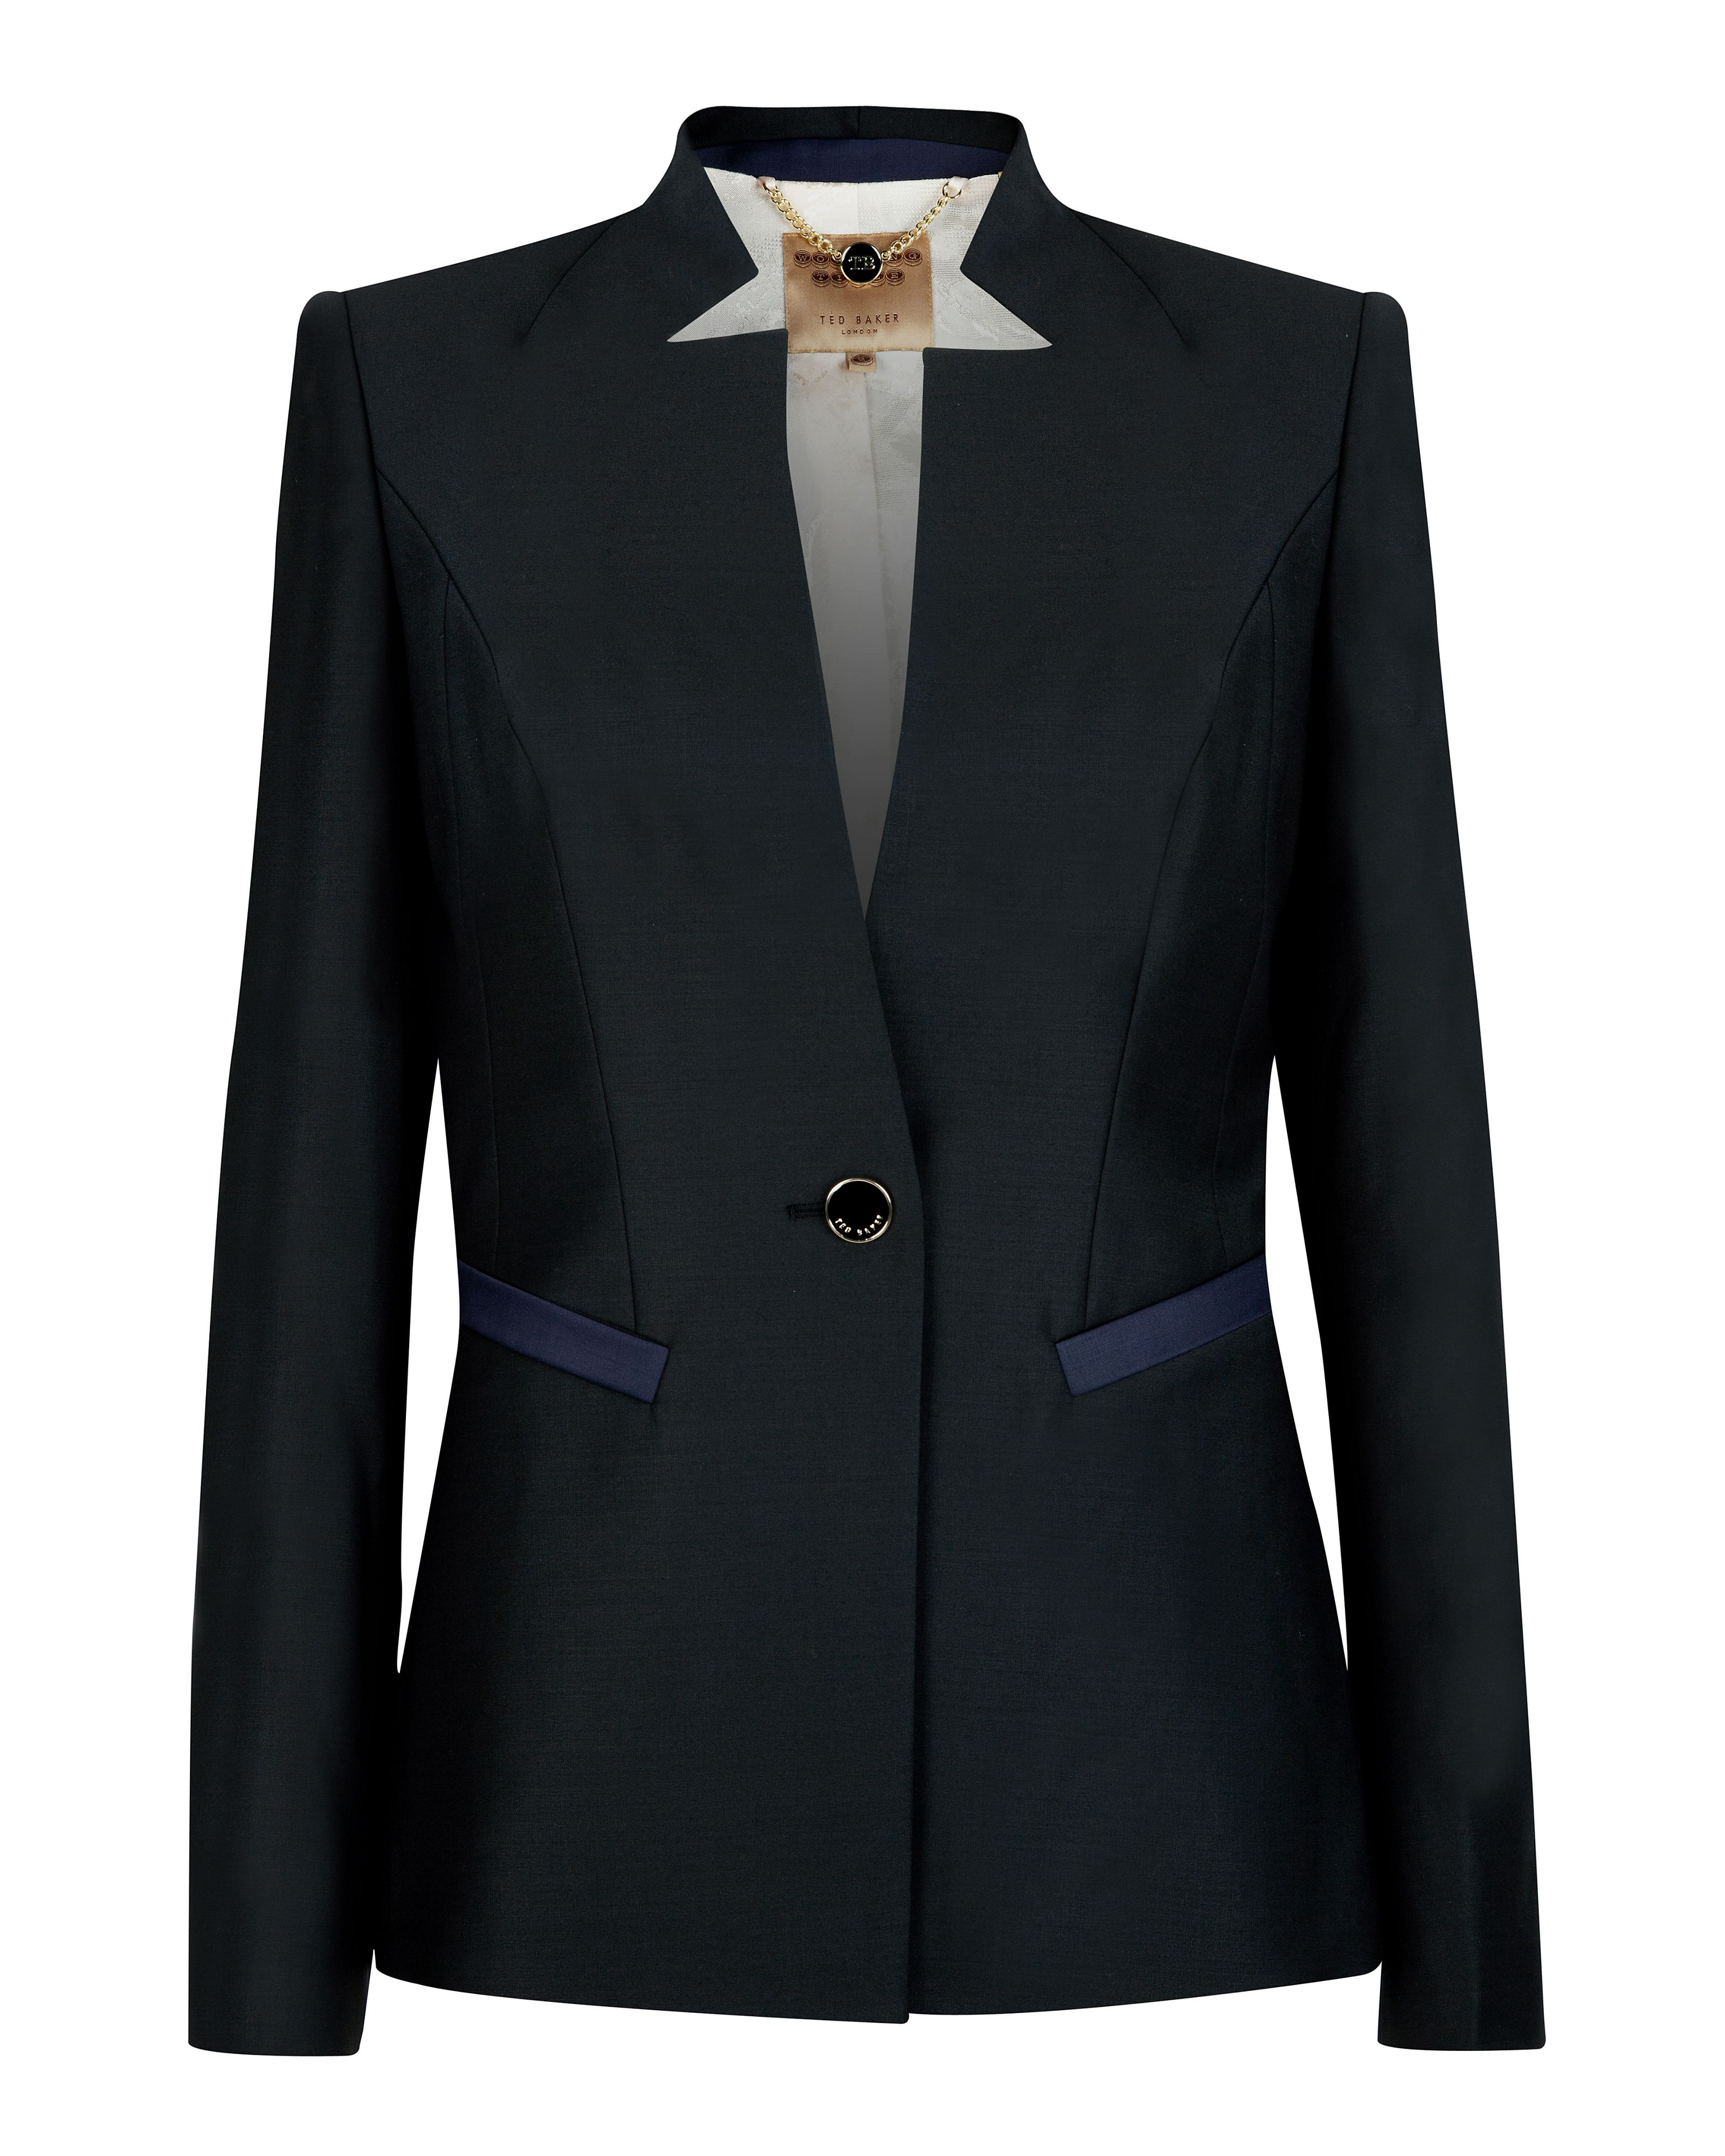 Altea wool suit jacket